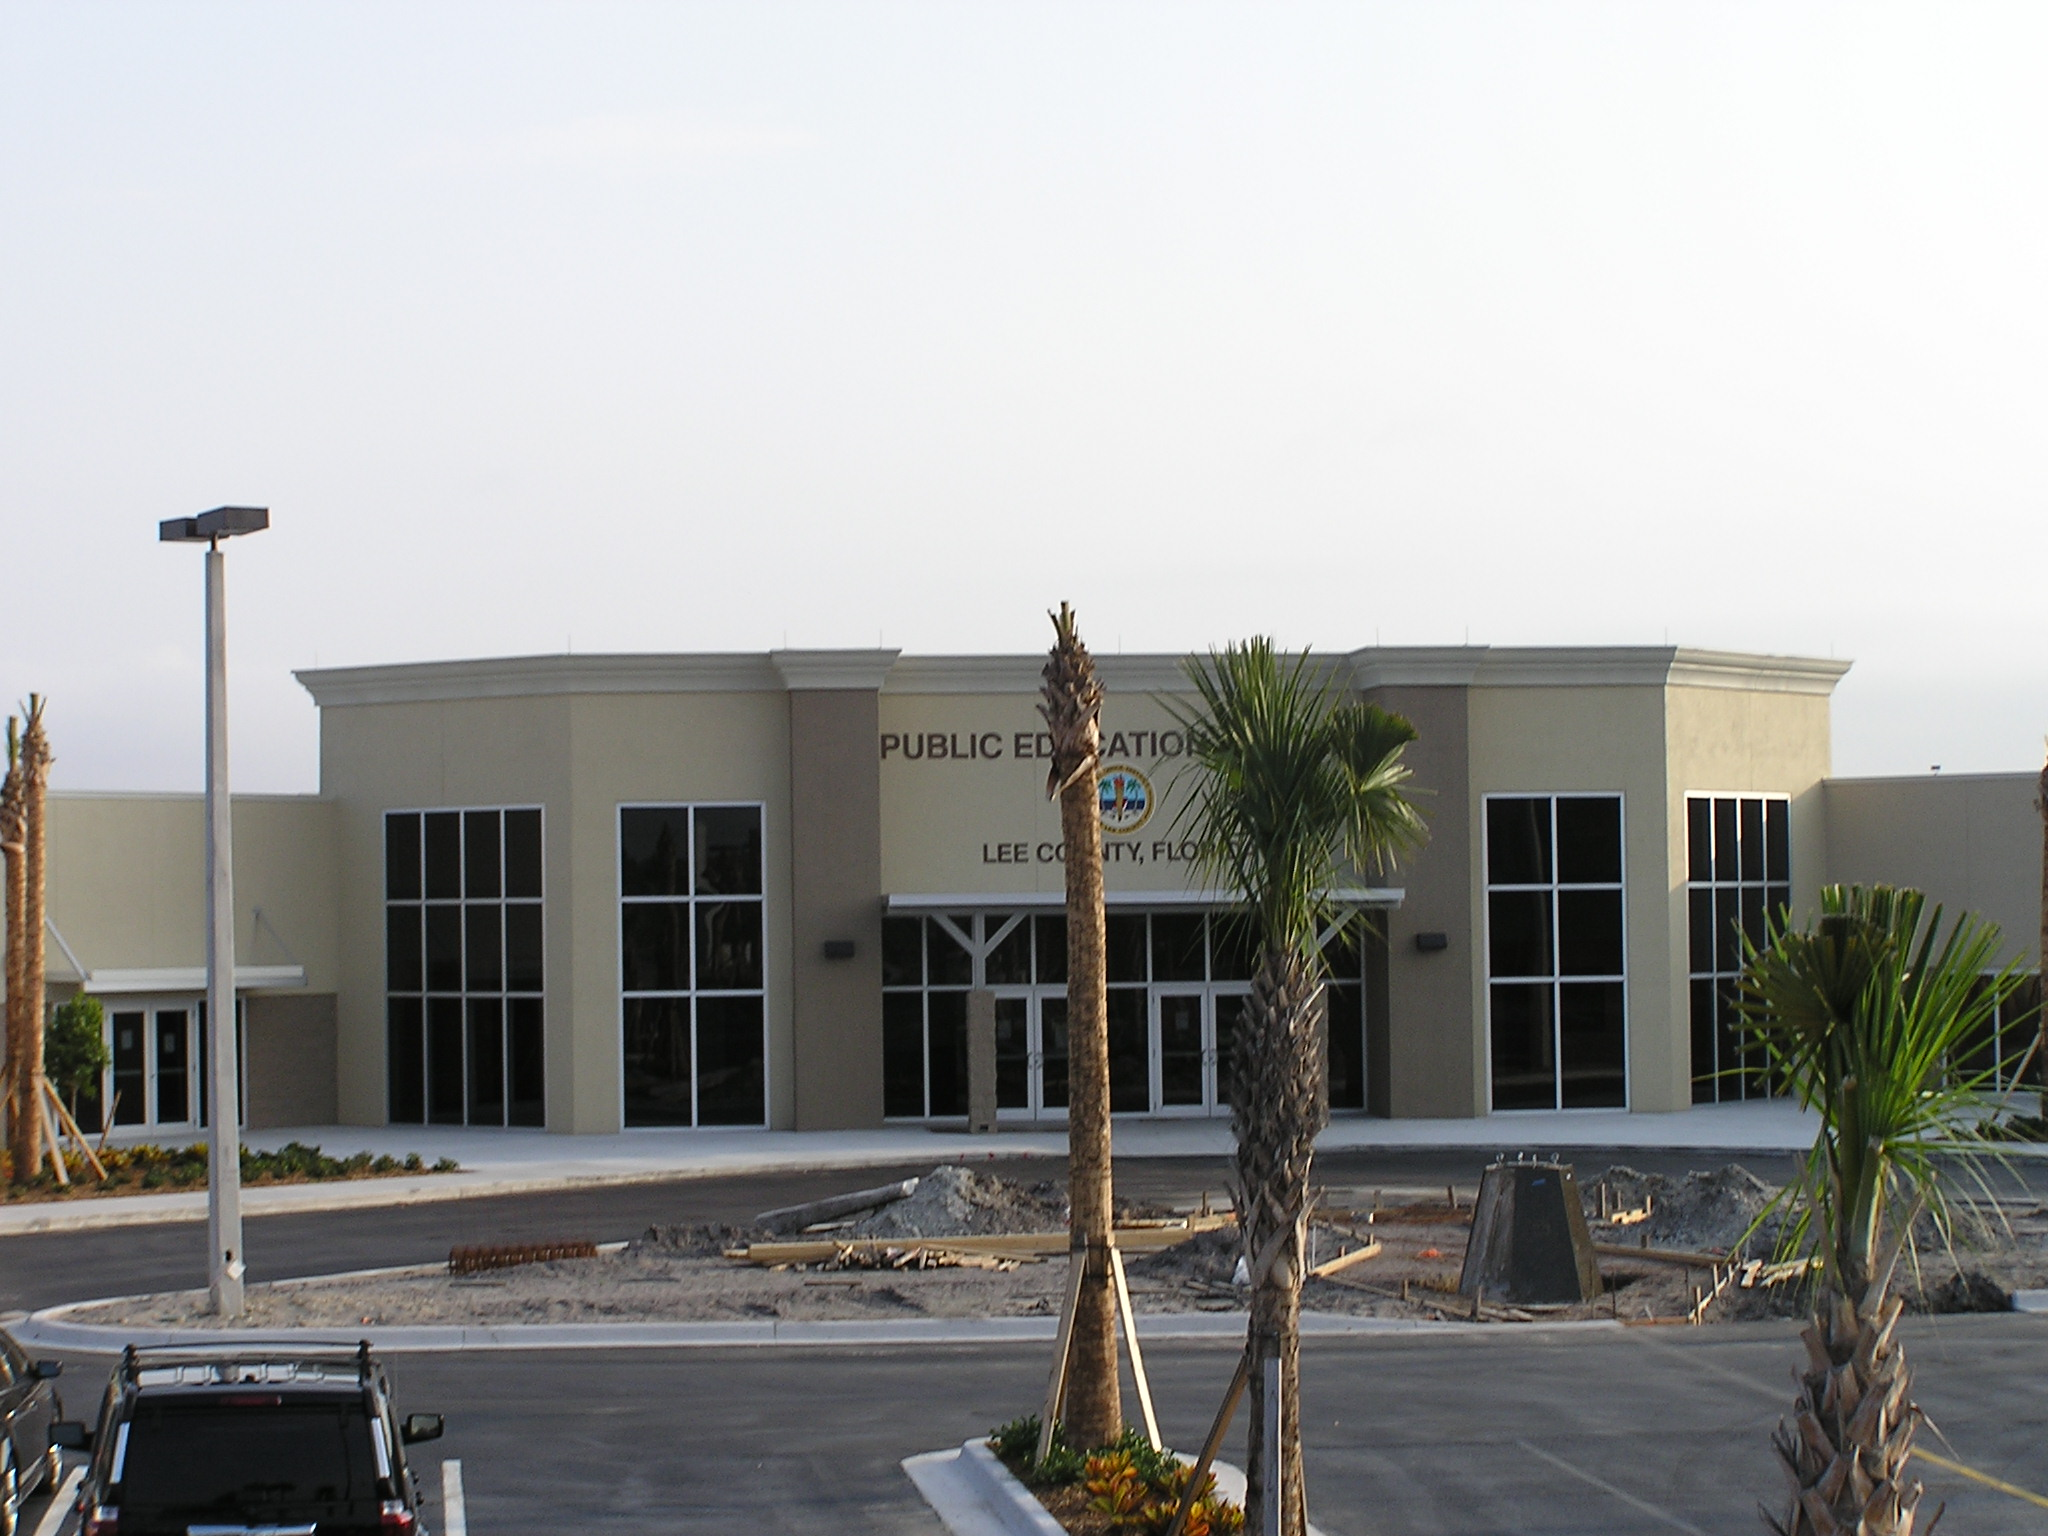 Commercial Renovation | Metro Mall - Lee County Education Bldg Fort Myers, Florida | xxxx square feet